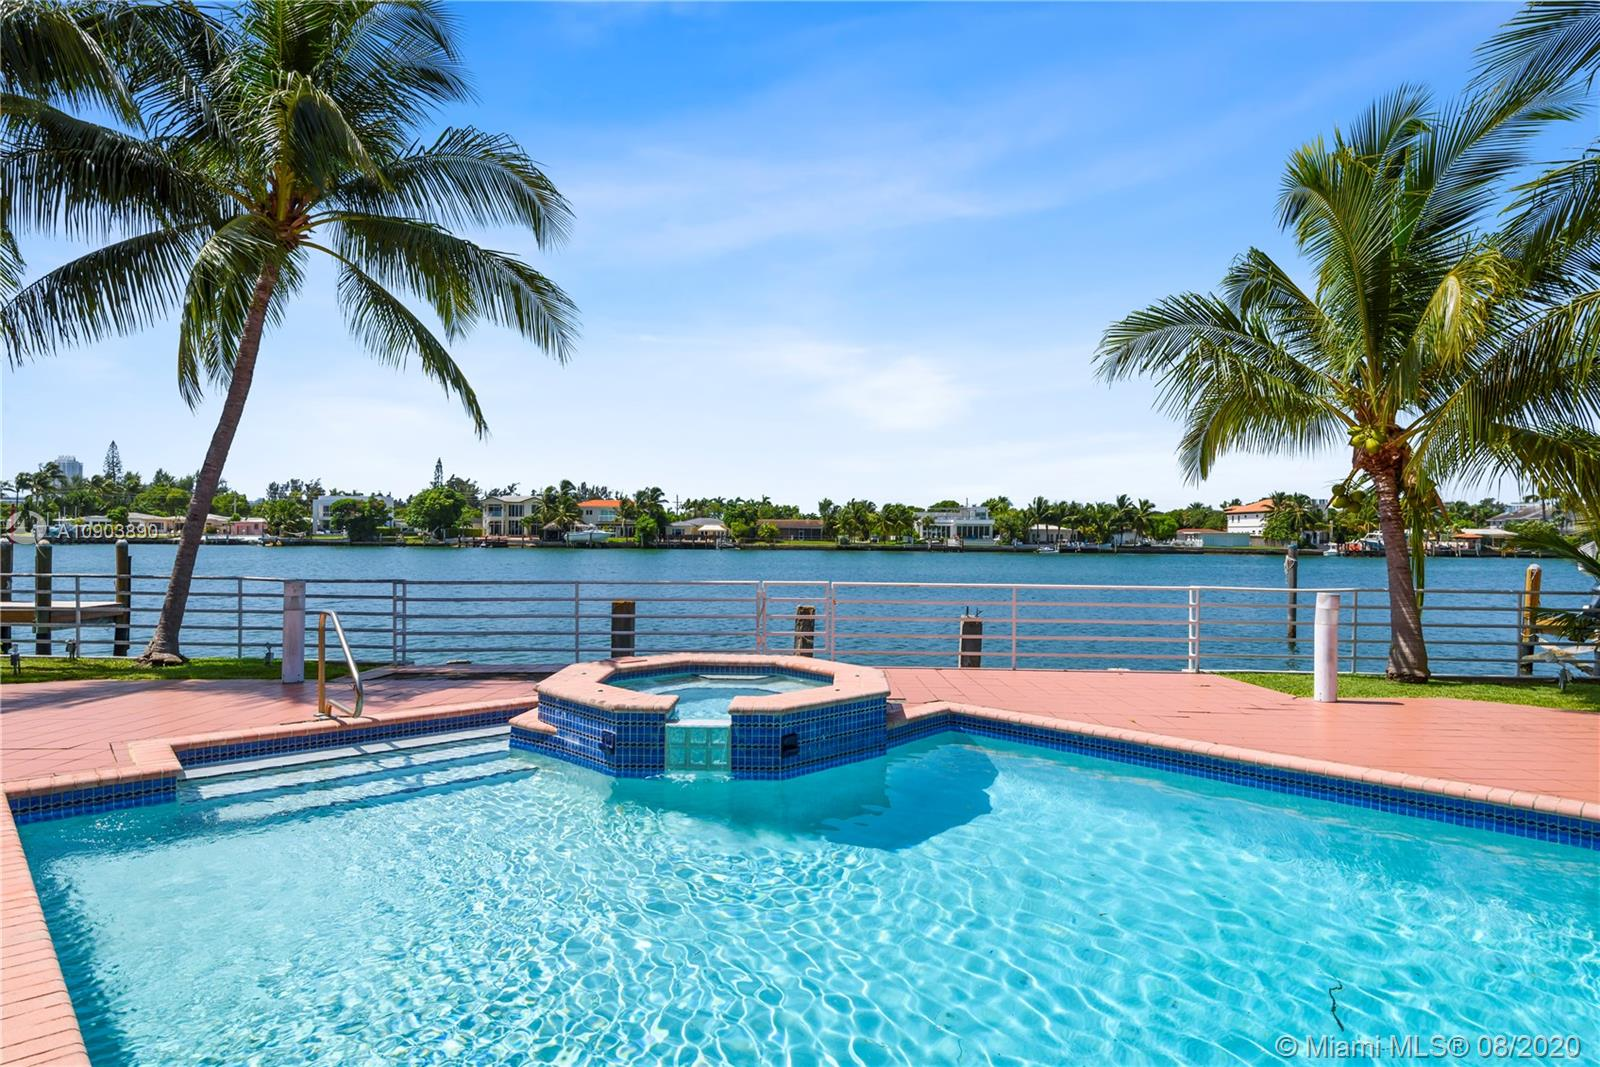 Absolute dream home in Miami Beach, amazing views of intracoastal paired with excellent architectural design which makes the appeal of this property a one of a kind Jewel. High Ceilings combined with spacious, open layout. 800 Sq ft of covered outdoor space. Picturesque views from sizeable roof deck. Breathtaking view of sunset and Miami skyline. Private guarded island of Biscayne point. Large pool with Jacuzzi overlooking the Bay. Come enjoy the best of Miami lifestyle. Close to beach, shopping, airport, and house of worship.